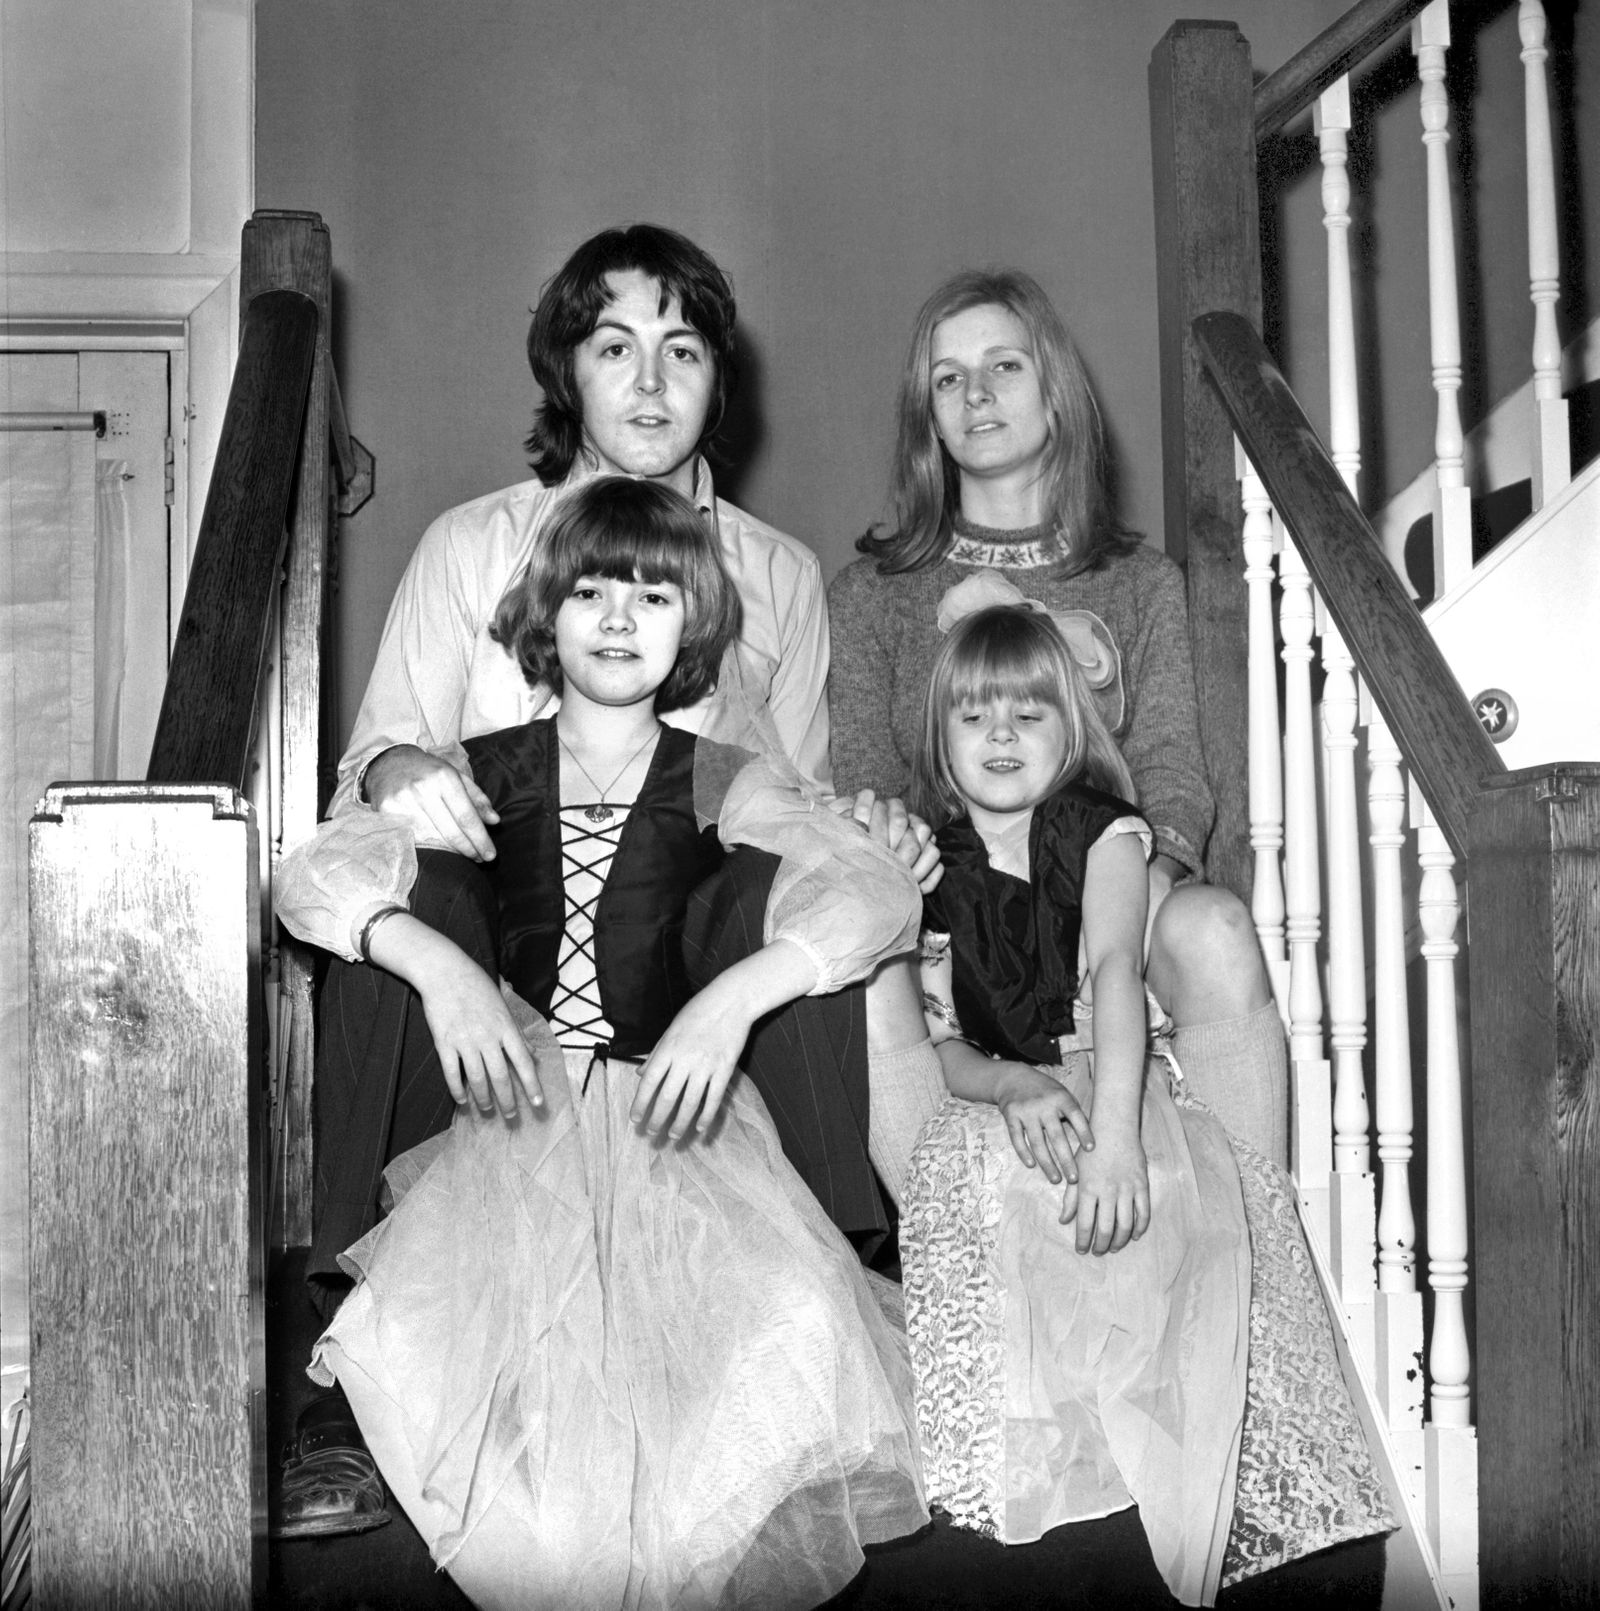 Beatles singer Paul McCartney with his new bride Linda Eastman and children, aged 4 and 7 March 1969 Z02435-001